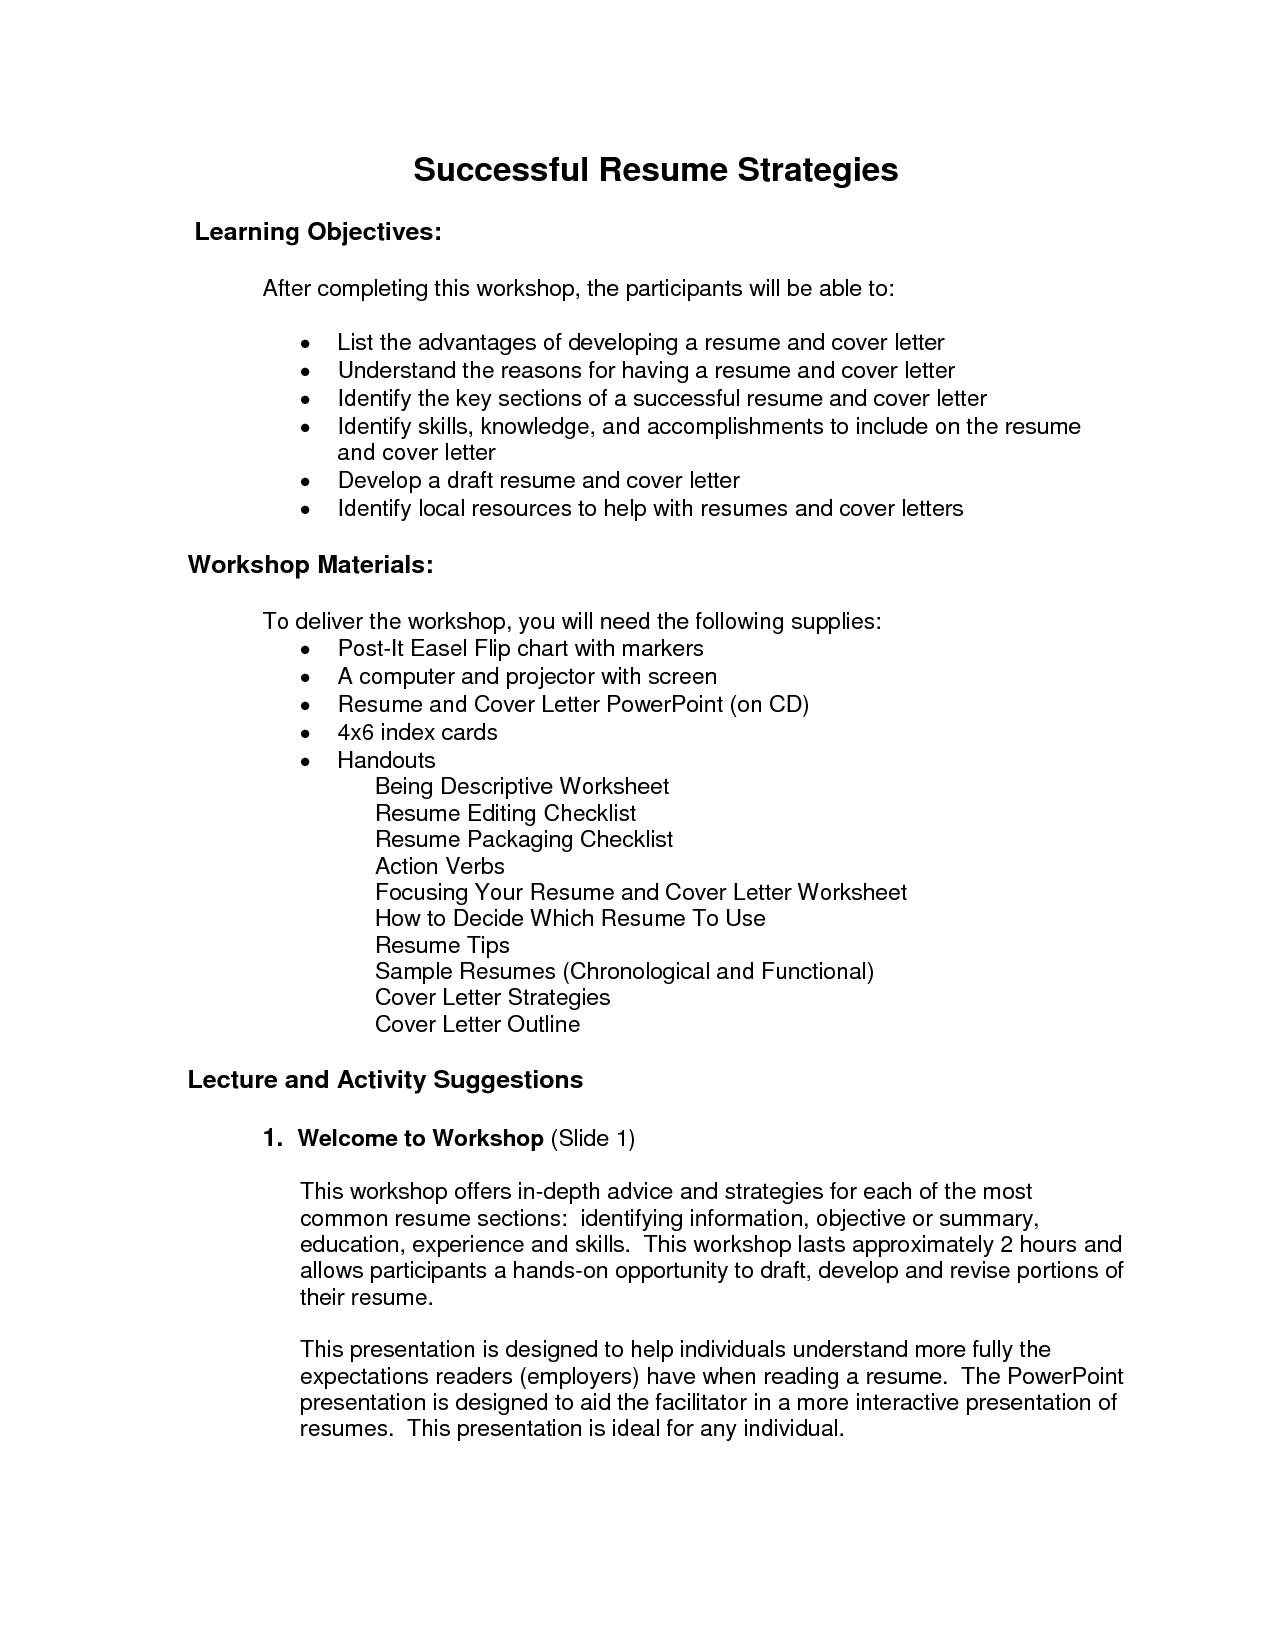 Resume For Government Job Fashion Stylist Resume Objective Examples  Httpwww